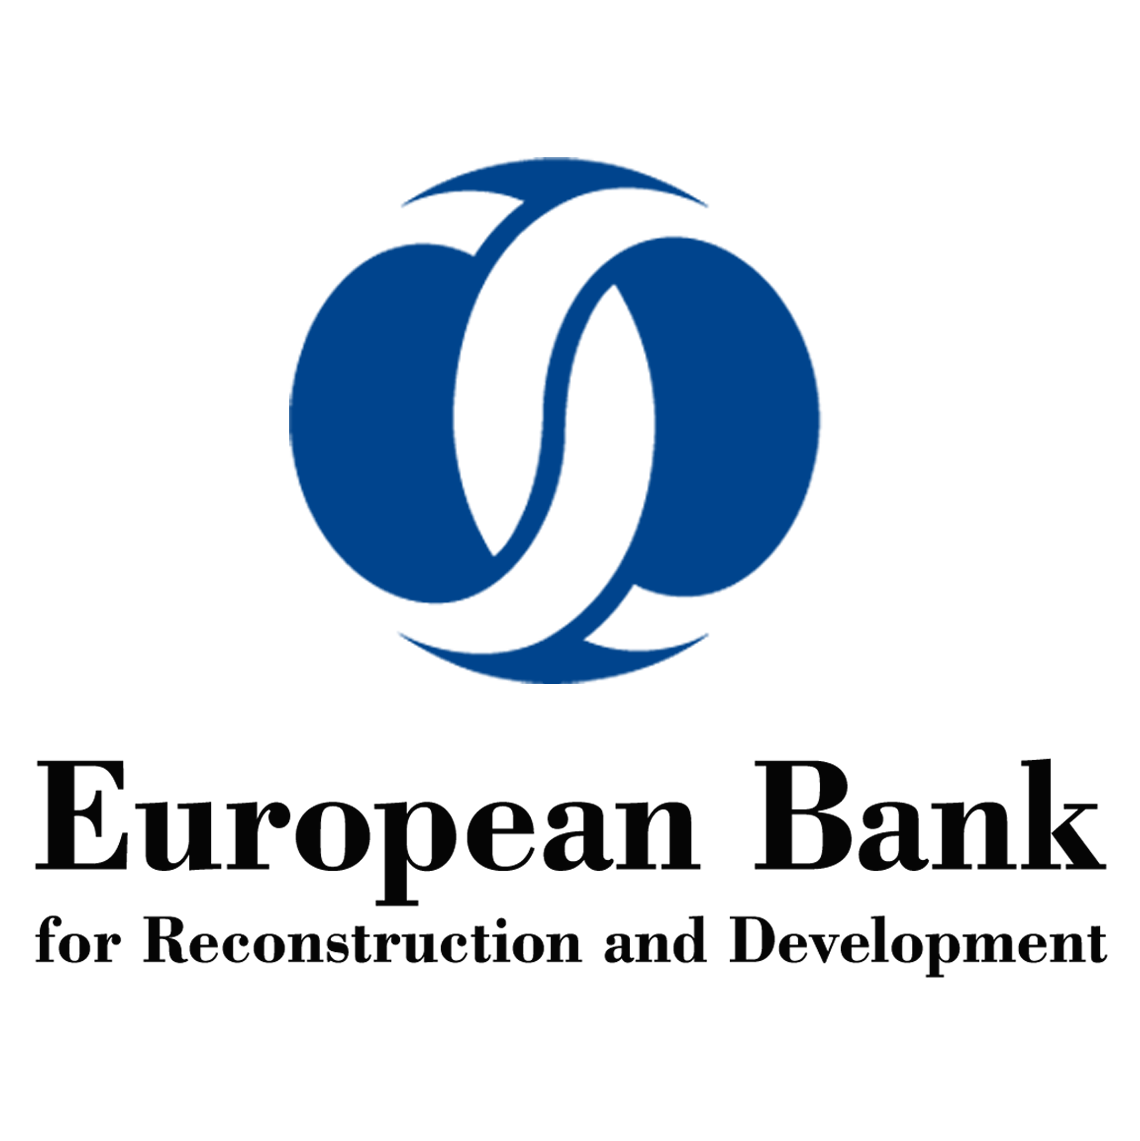 EBRD: New 5-year strategy for Serbia – Reform of state businesses at the top